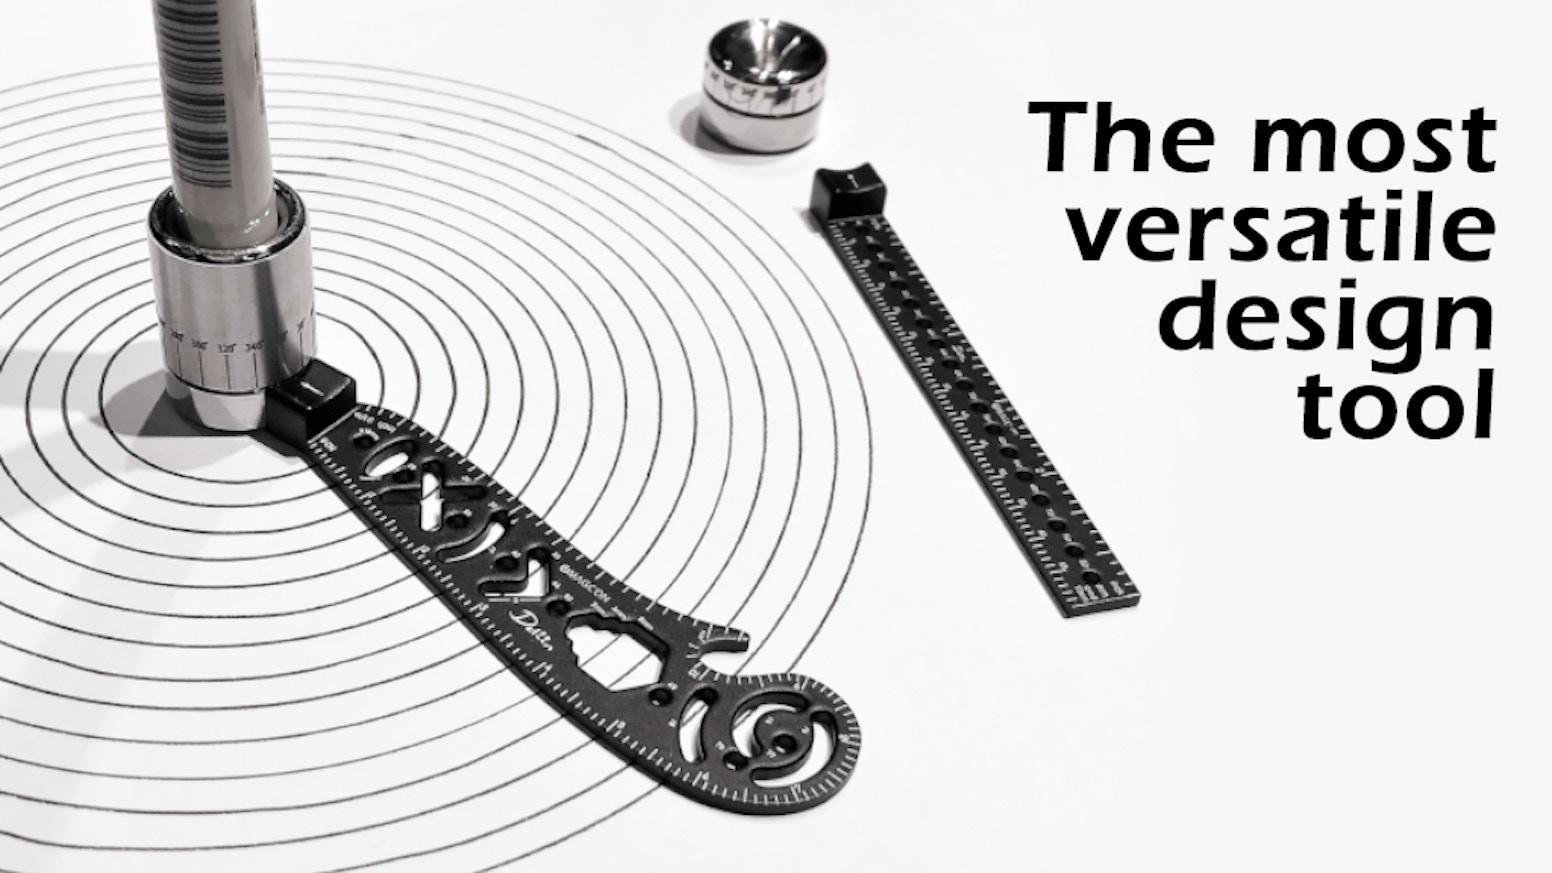 A mini compass and protractor combo to perfect sketching and create a new drawing experience